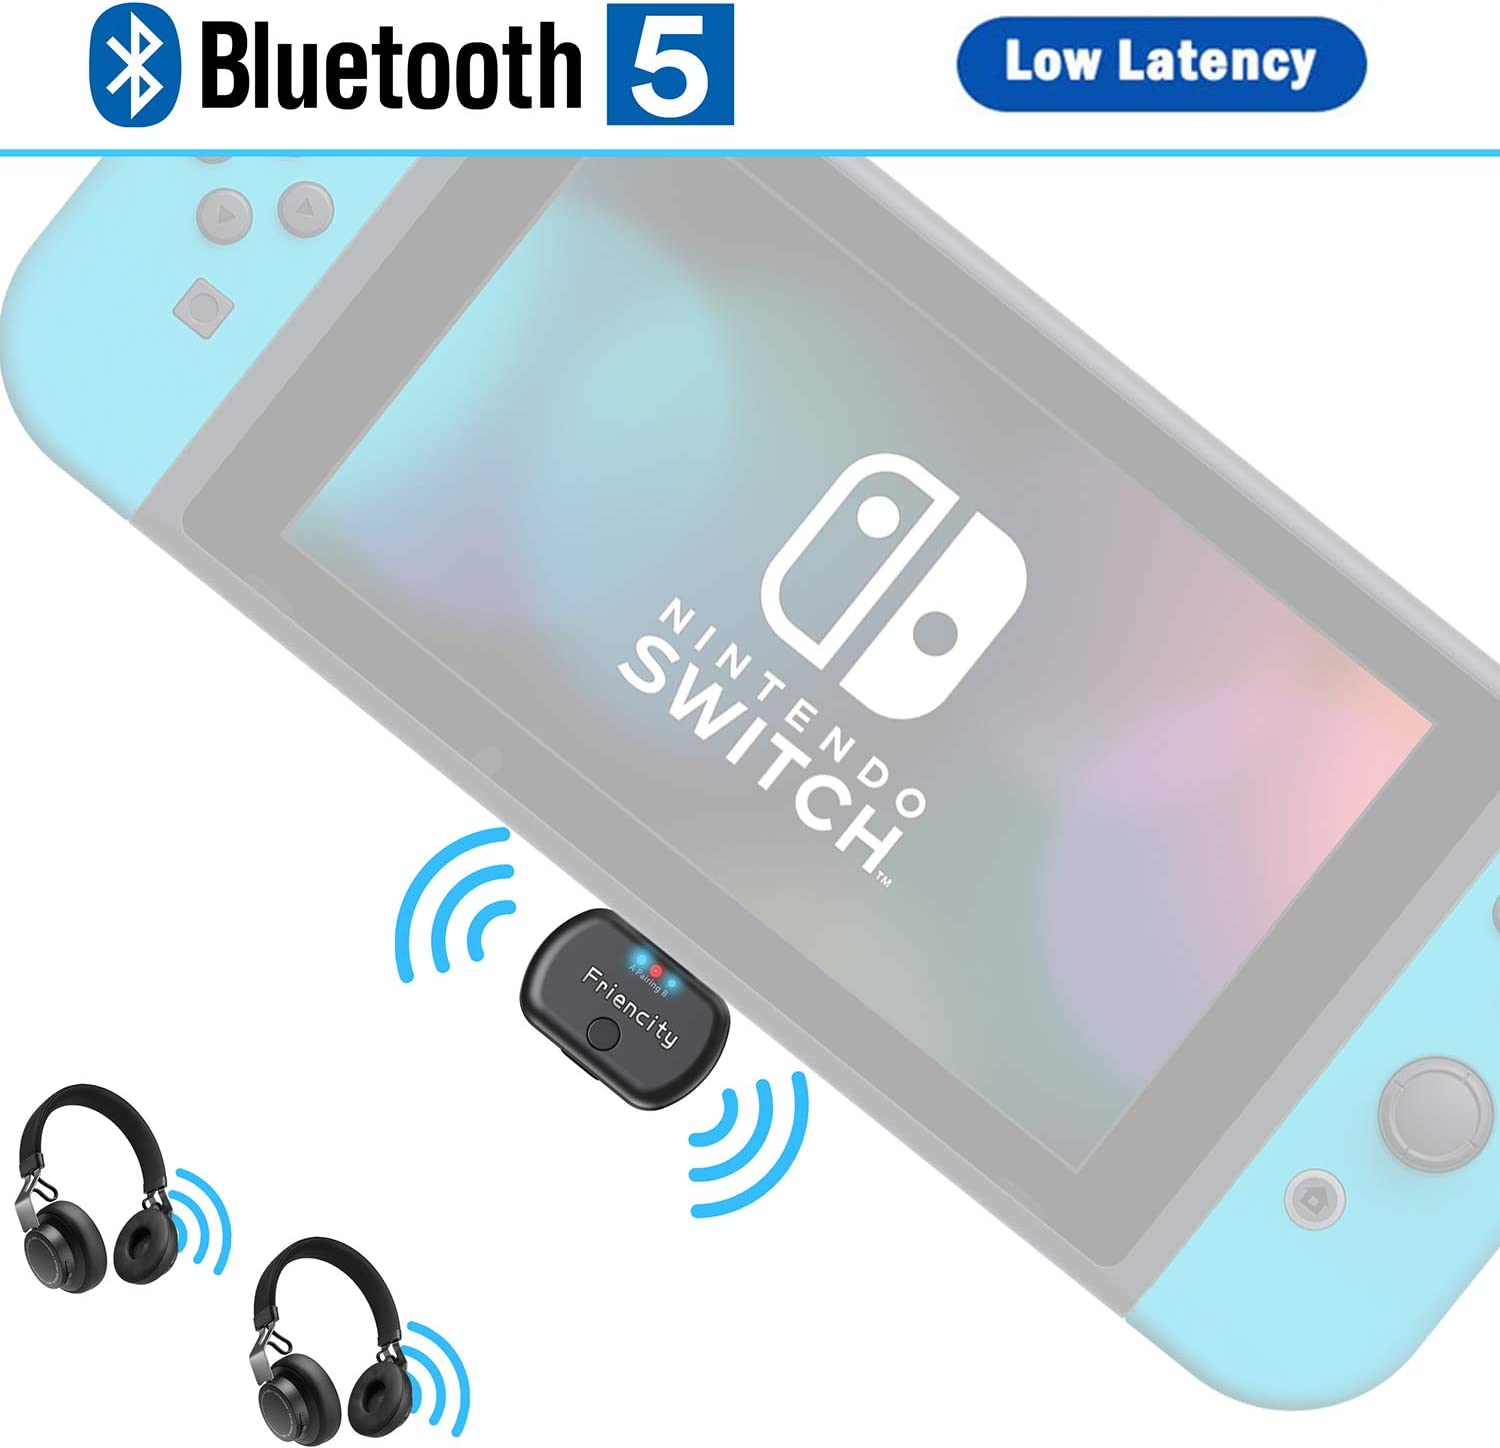 Amazon Com Friencity Bluetooth Audio Transmitter For Nintendo Switch Ps4 Low Latency Usb Type C Wireless Adapter Support In Game Voice Two Headphones Compatible With Airpod Bose Sony Headphone Plug N Play Home Audio